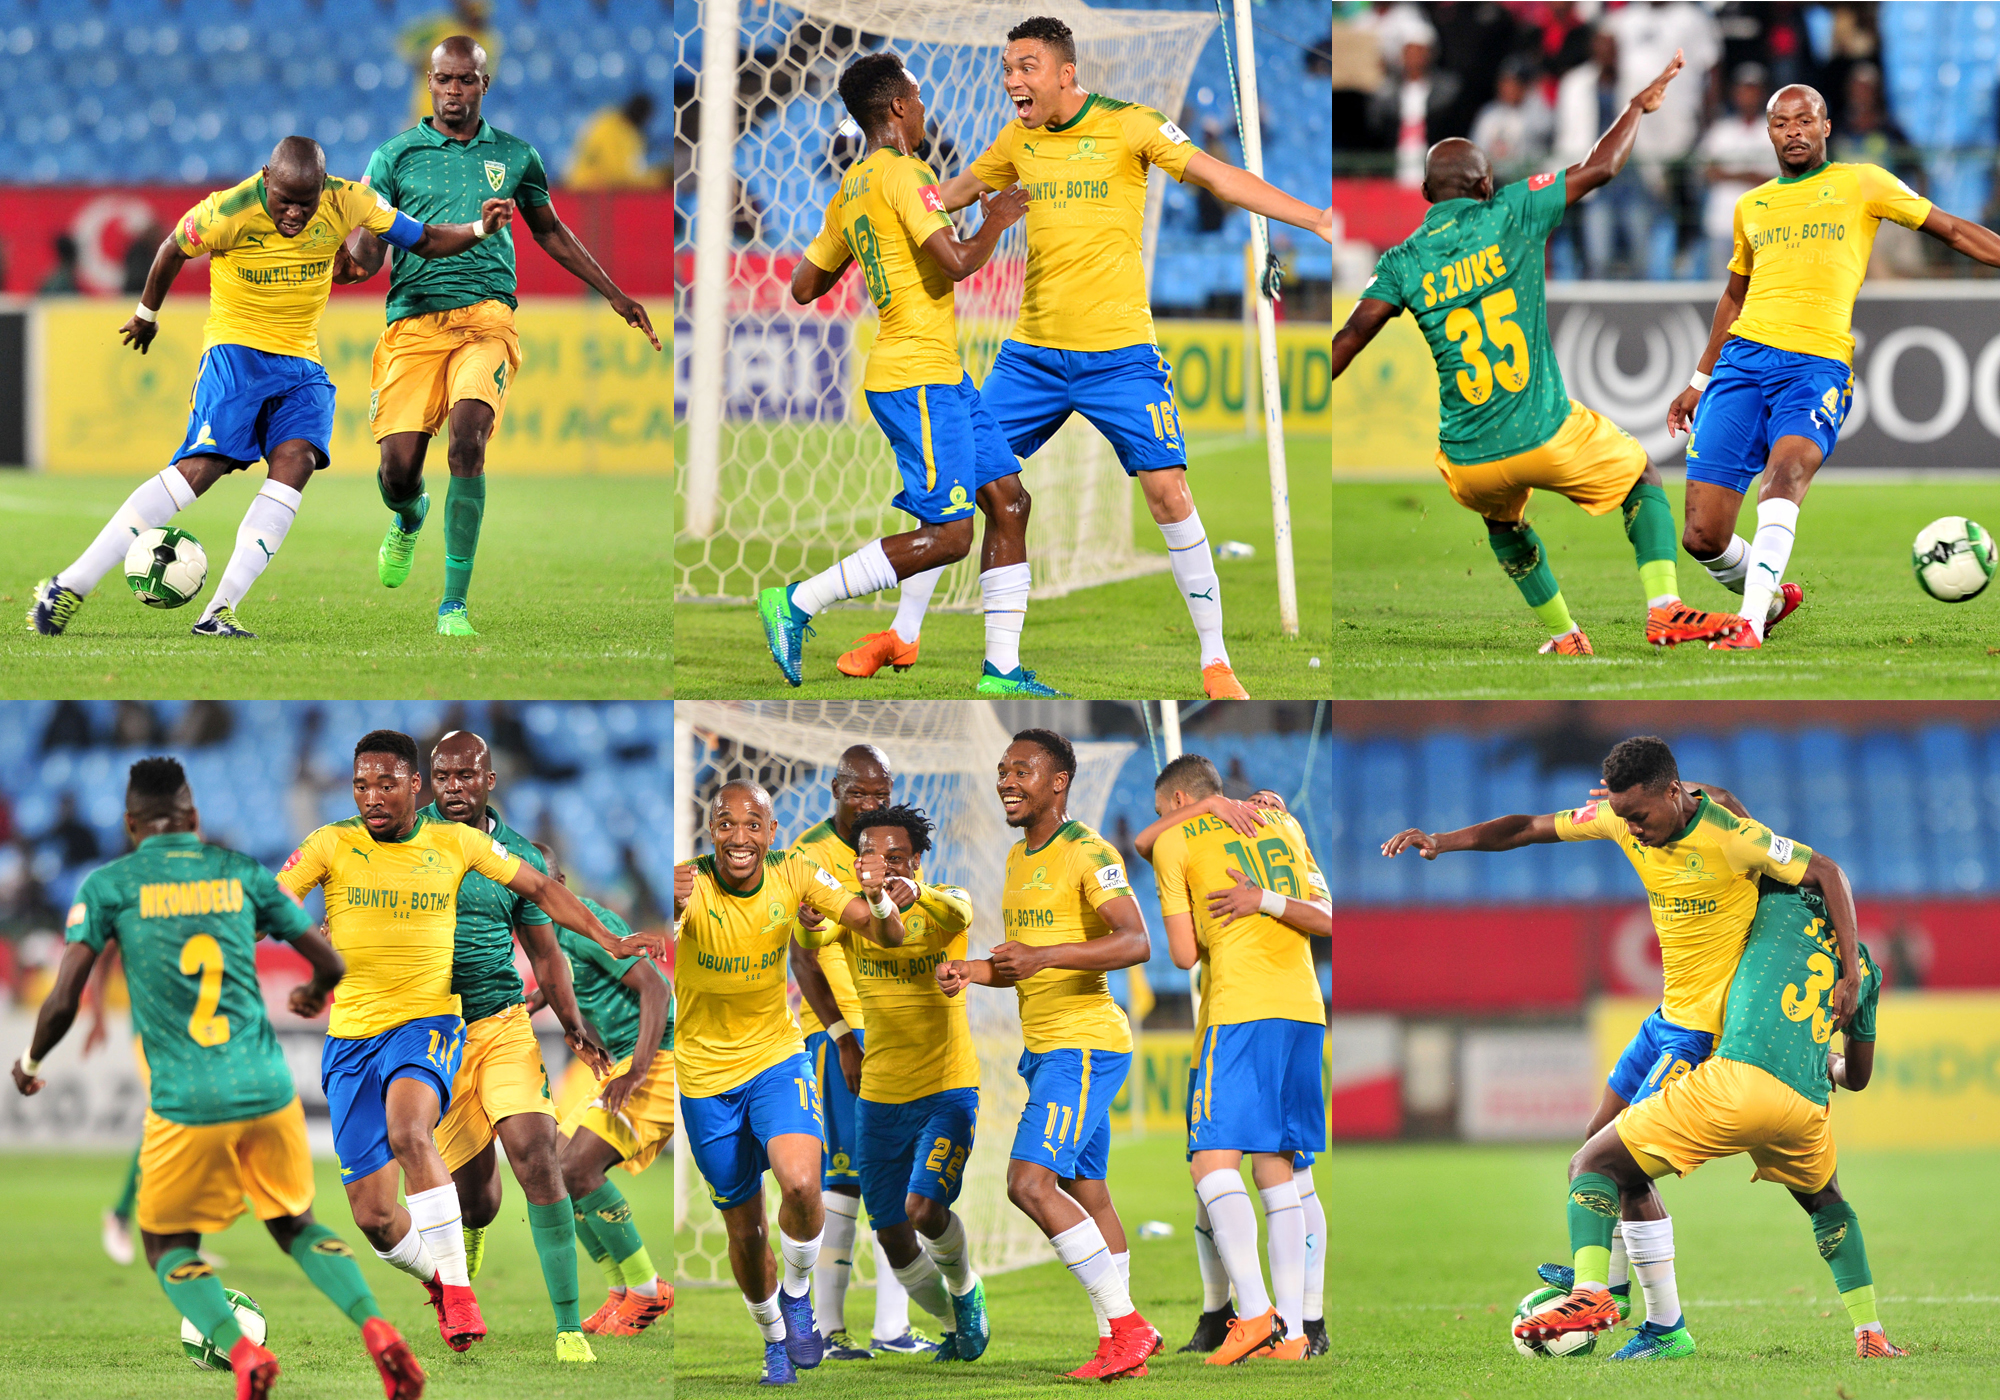 9a0544503607b Bafana ba Style really turned on the heat and showed just how riveting  their style of play has become.